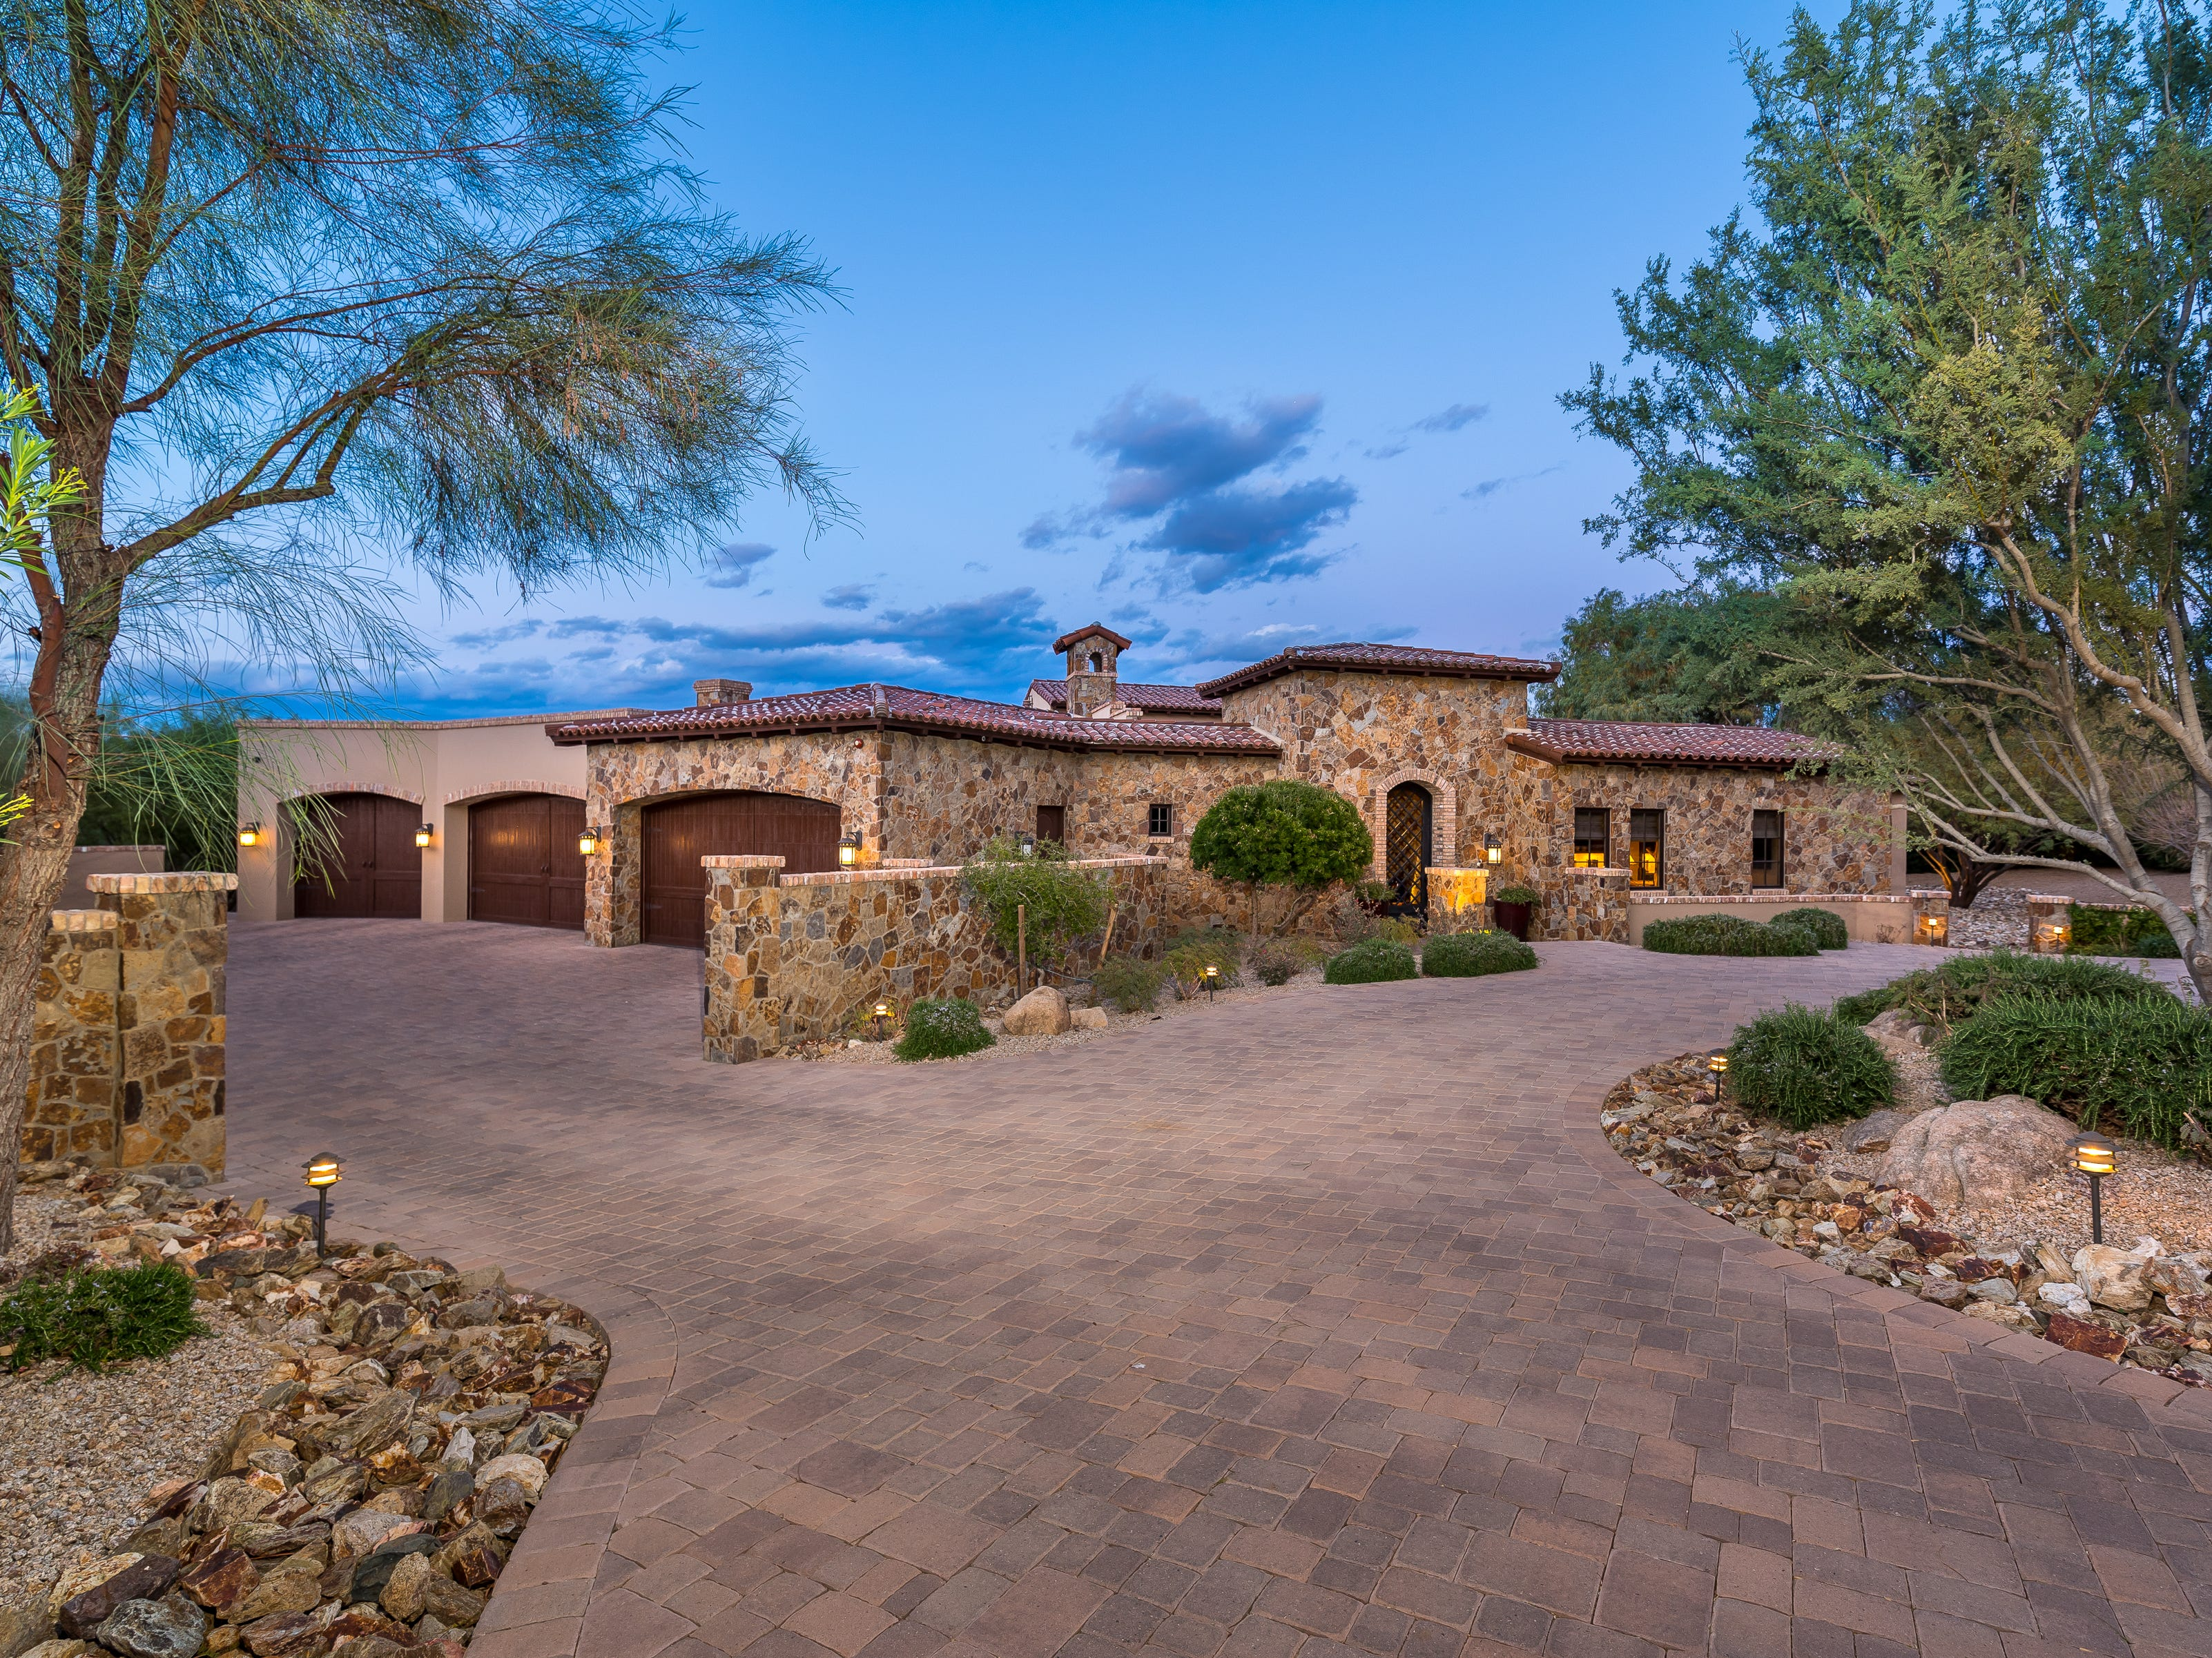 Stanley C. Graves, an orthopedic surgeon practicing in Phoenix, and his wife, Patricia, purchased this Paradise Valley mansion for $3.4 million.